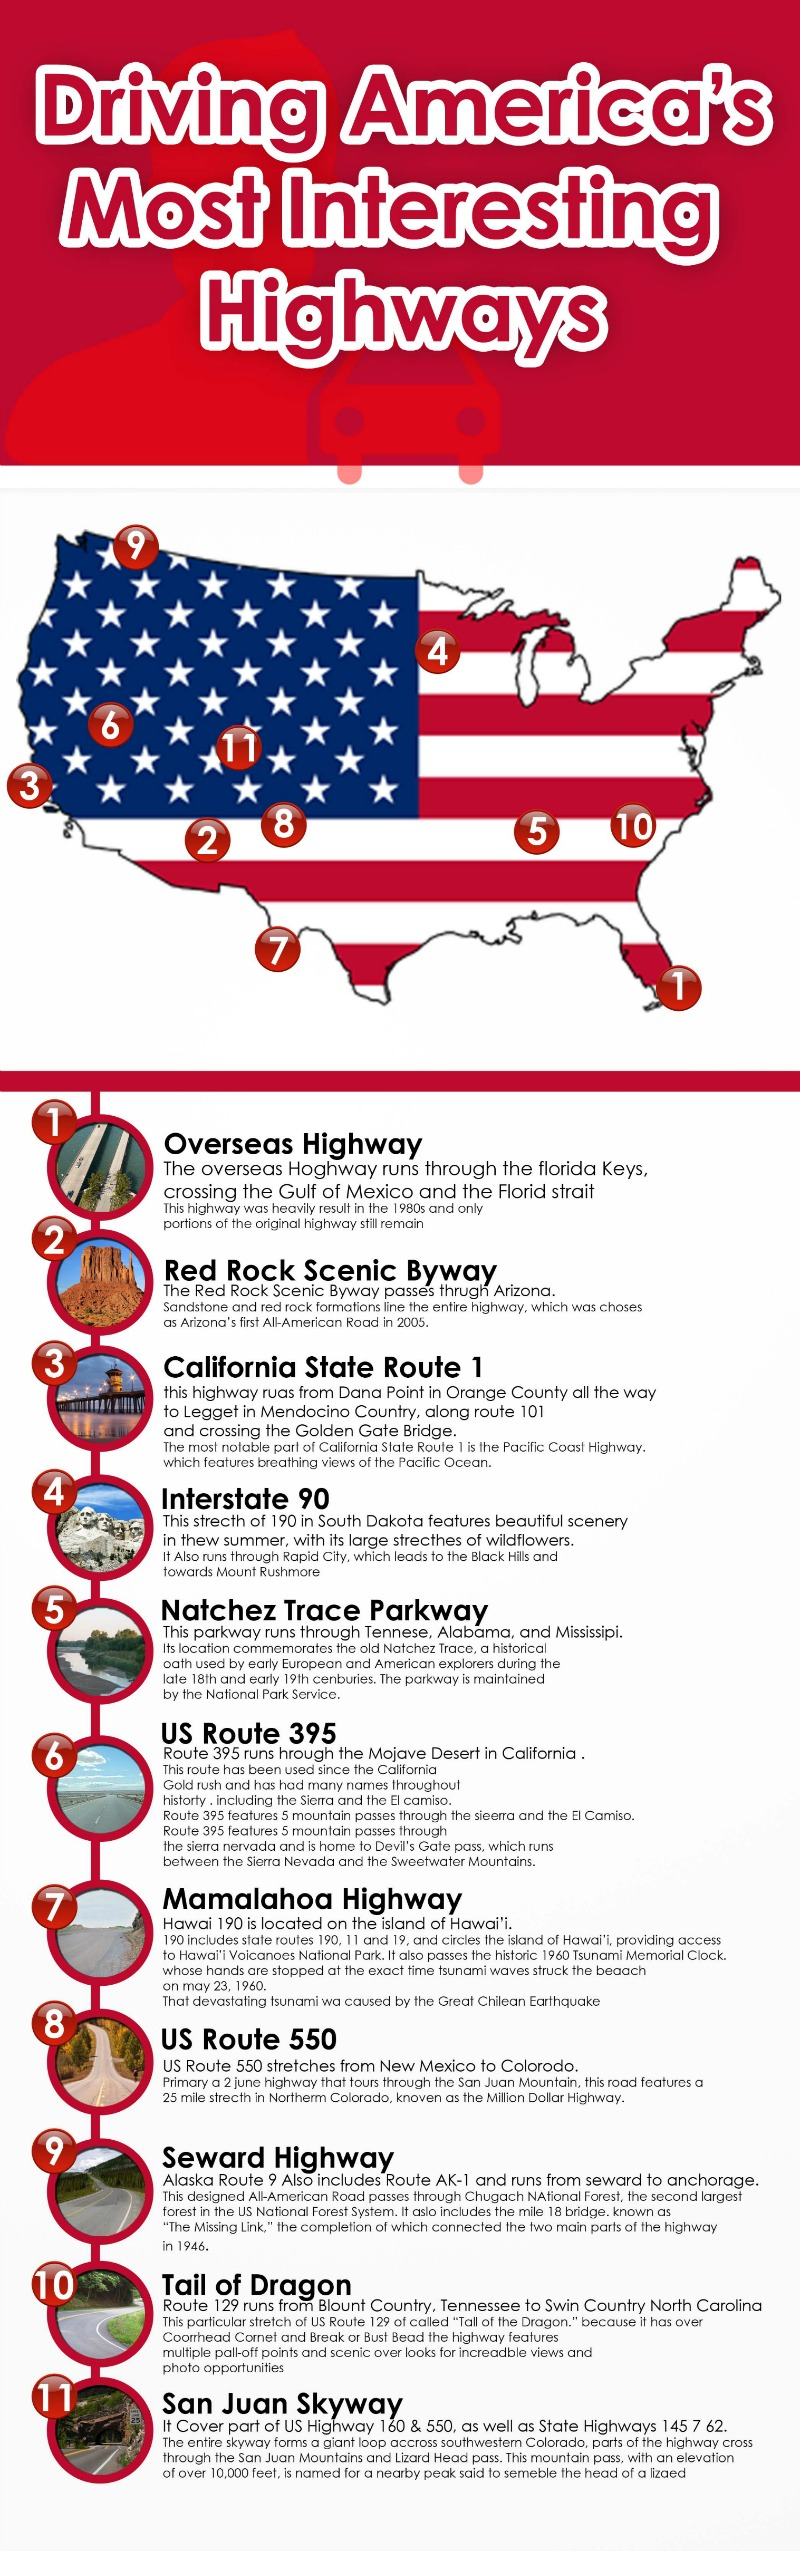 America's most interesting highways for motorcycle riding